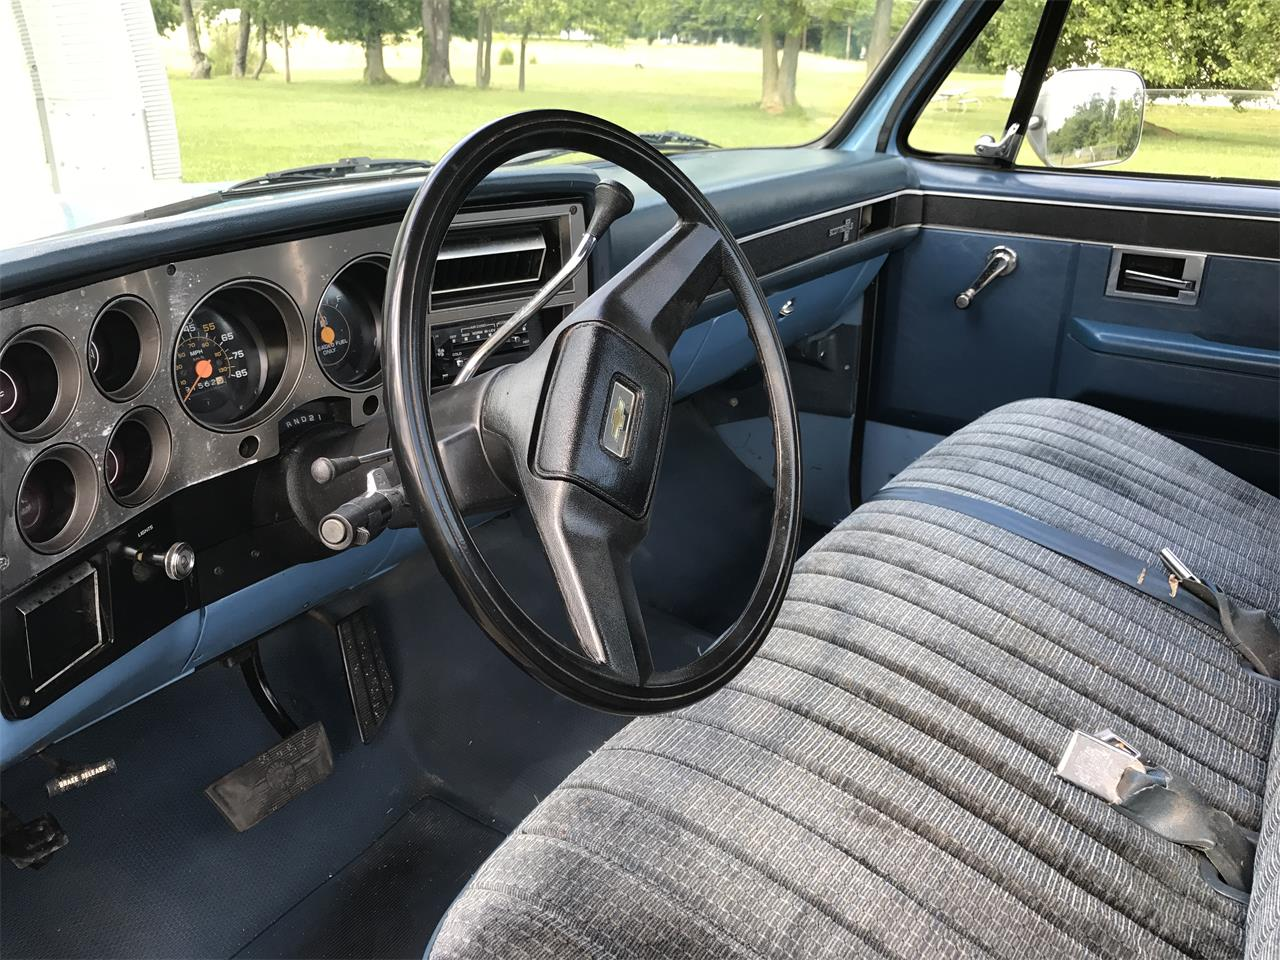 Large Picture of 1986 Chevrolet Pickup located in West Virginia - $16,500.00 Offered by Champion Pre-Owned Classics - ITML